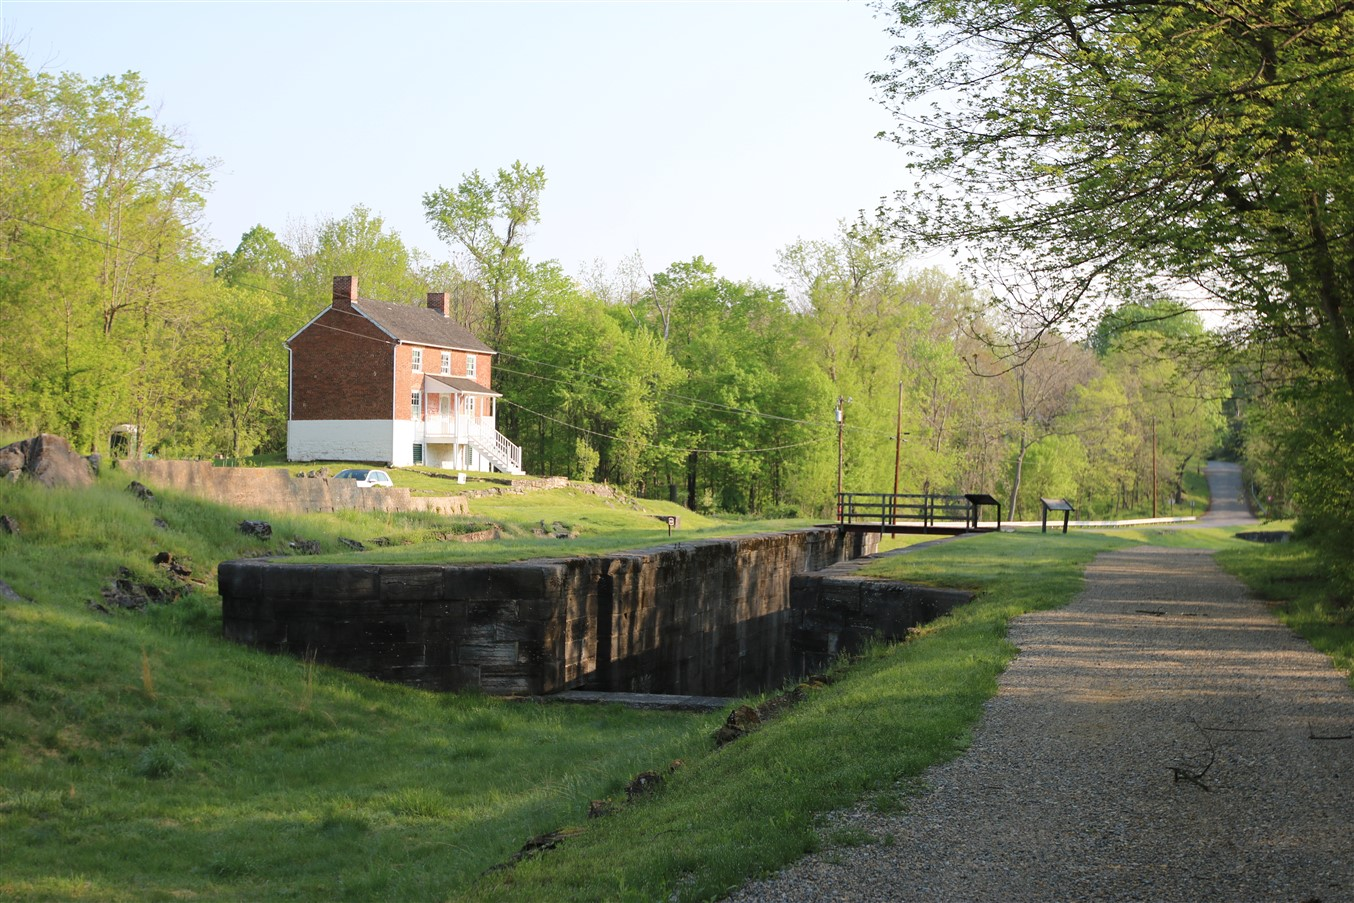 2018 05 08 8 Hancock MD C & O Canal Four Locks.jpg